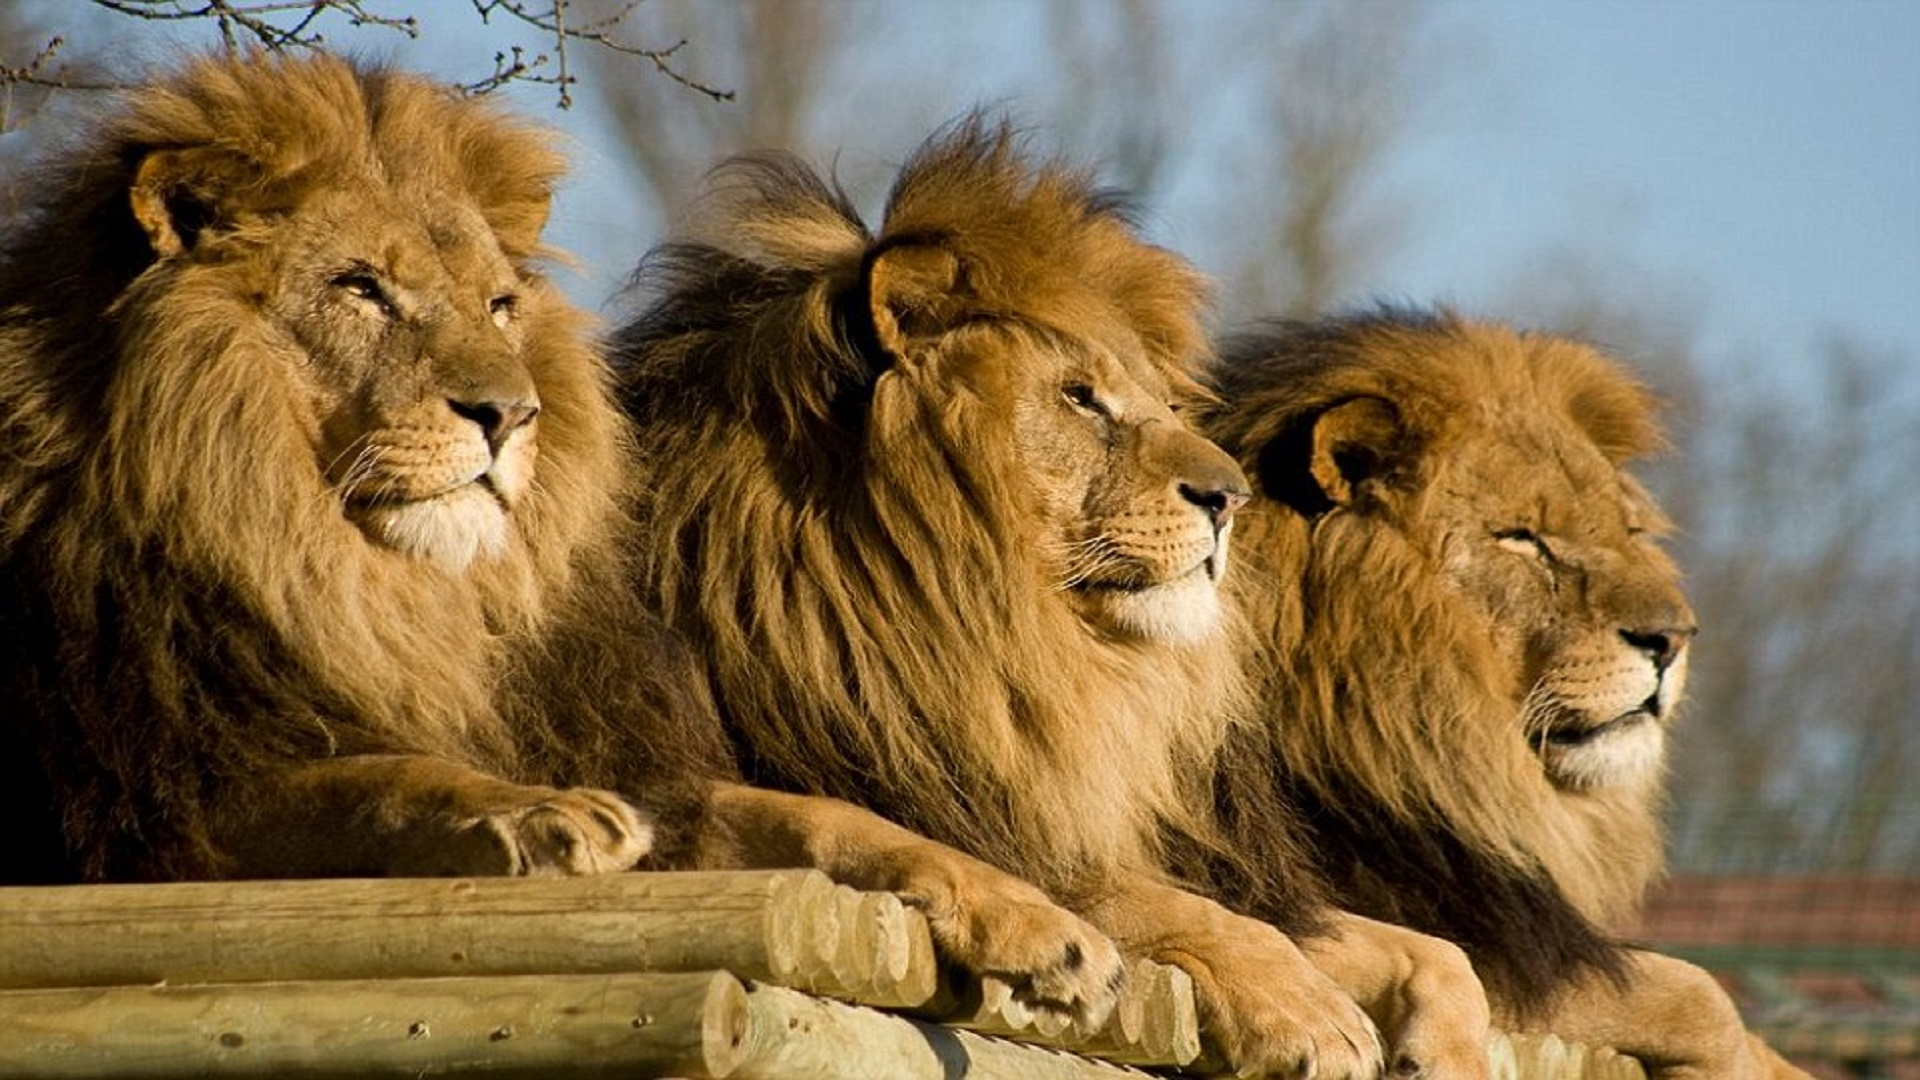 Animated Jungle Wallpaper Beautiful Dangerous African Lion Hd Wallpapers Free